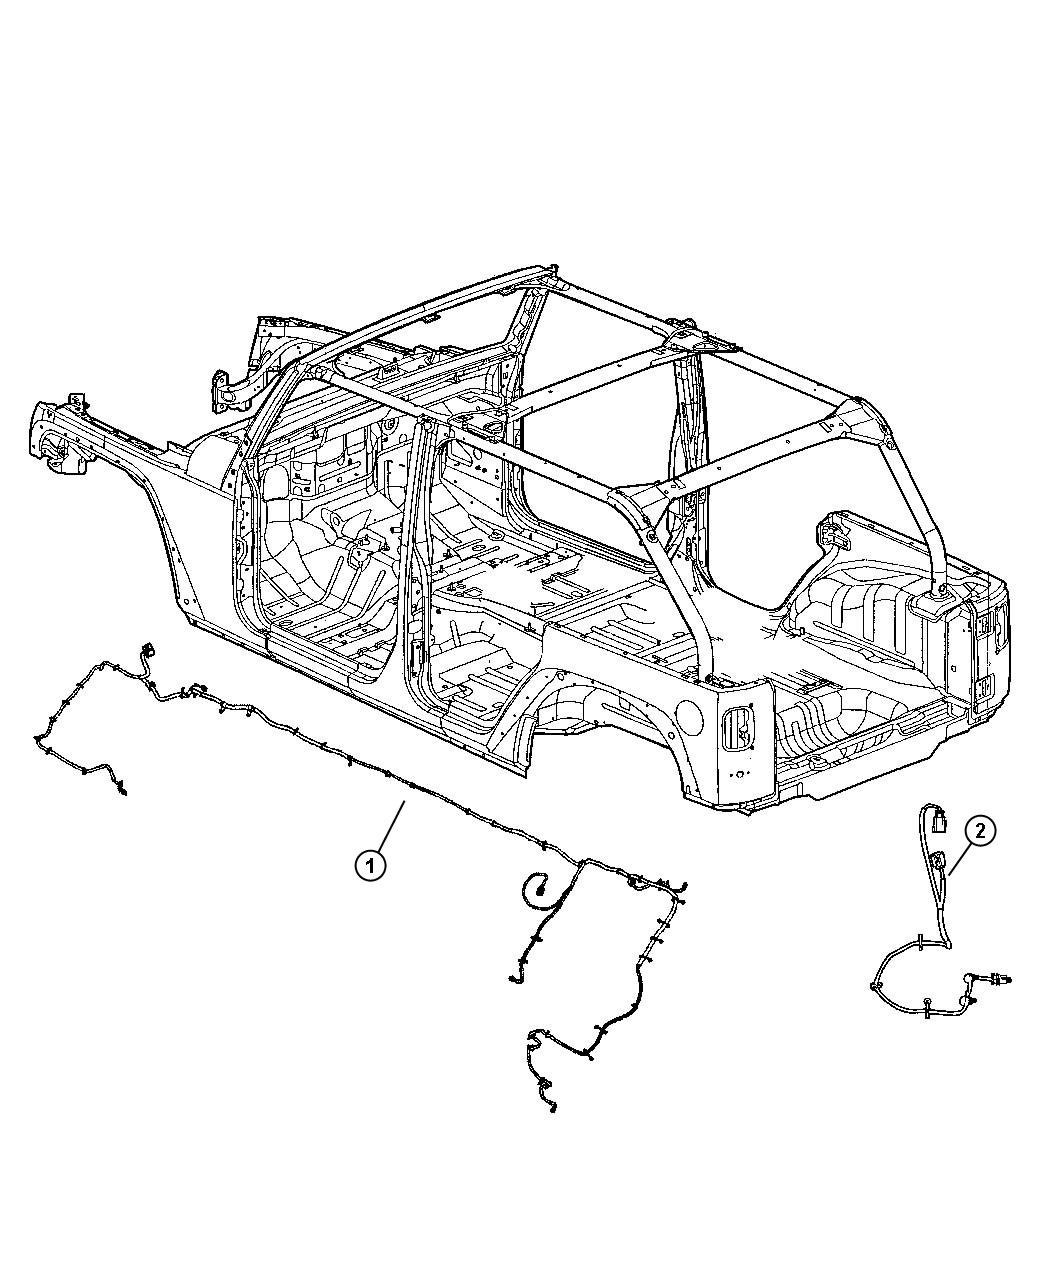 Jeep Wrangler Wiring. Chassis. Front, rear, bar